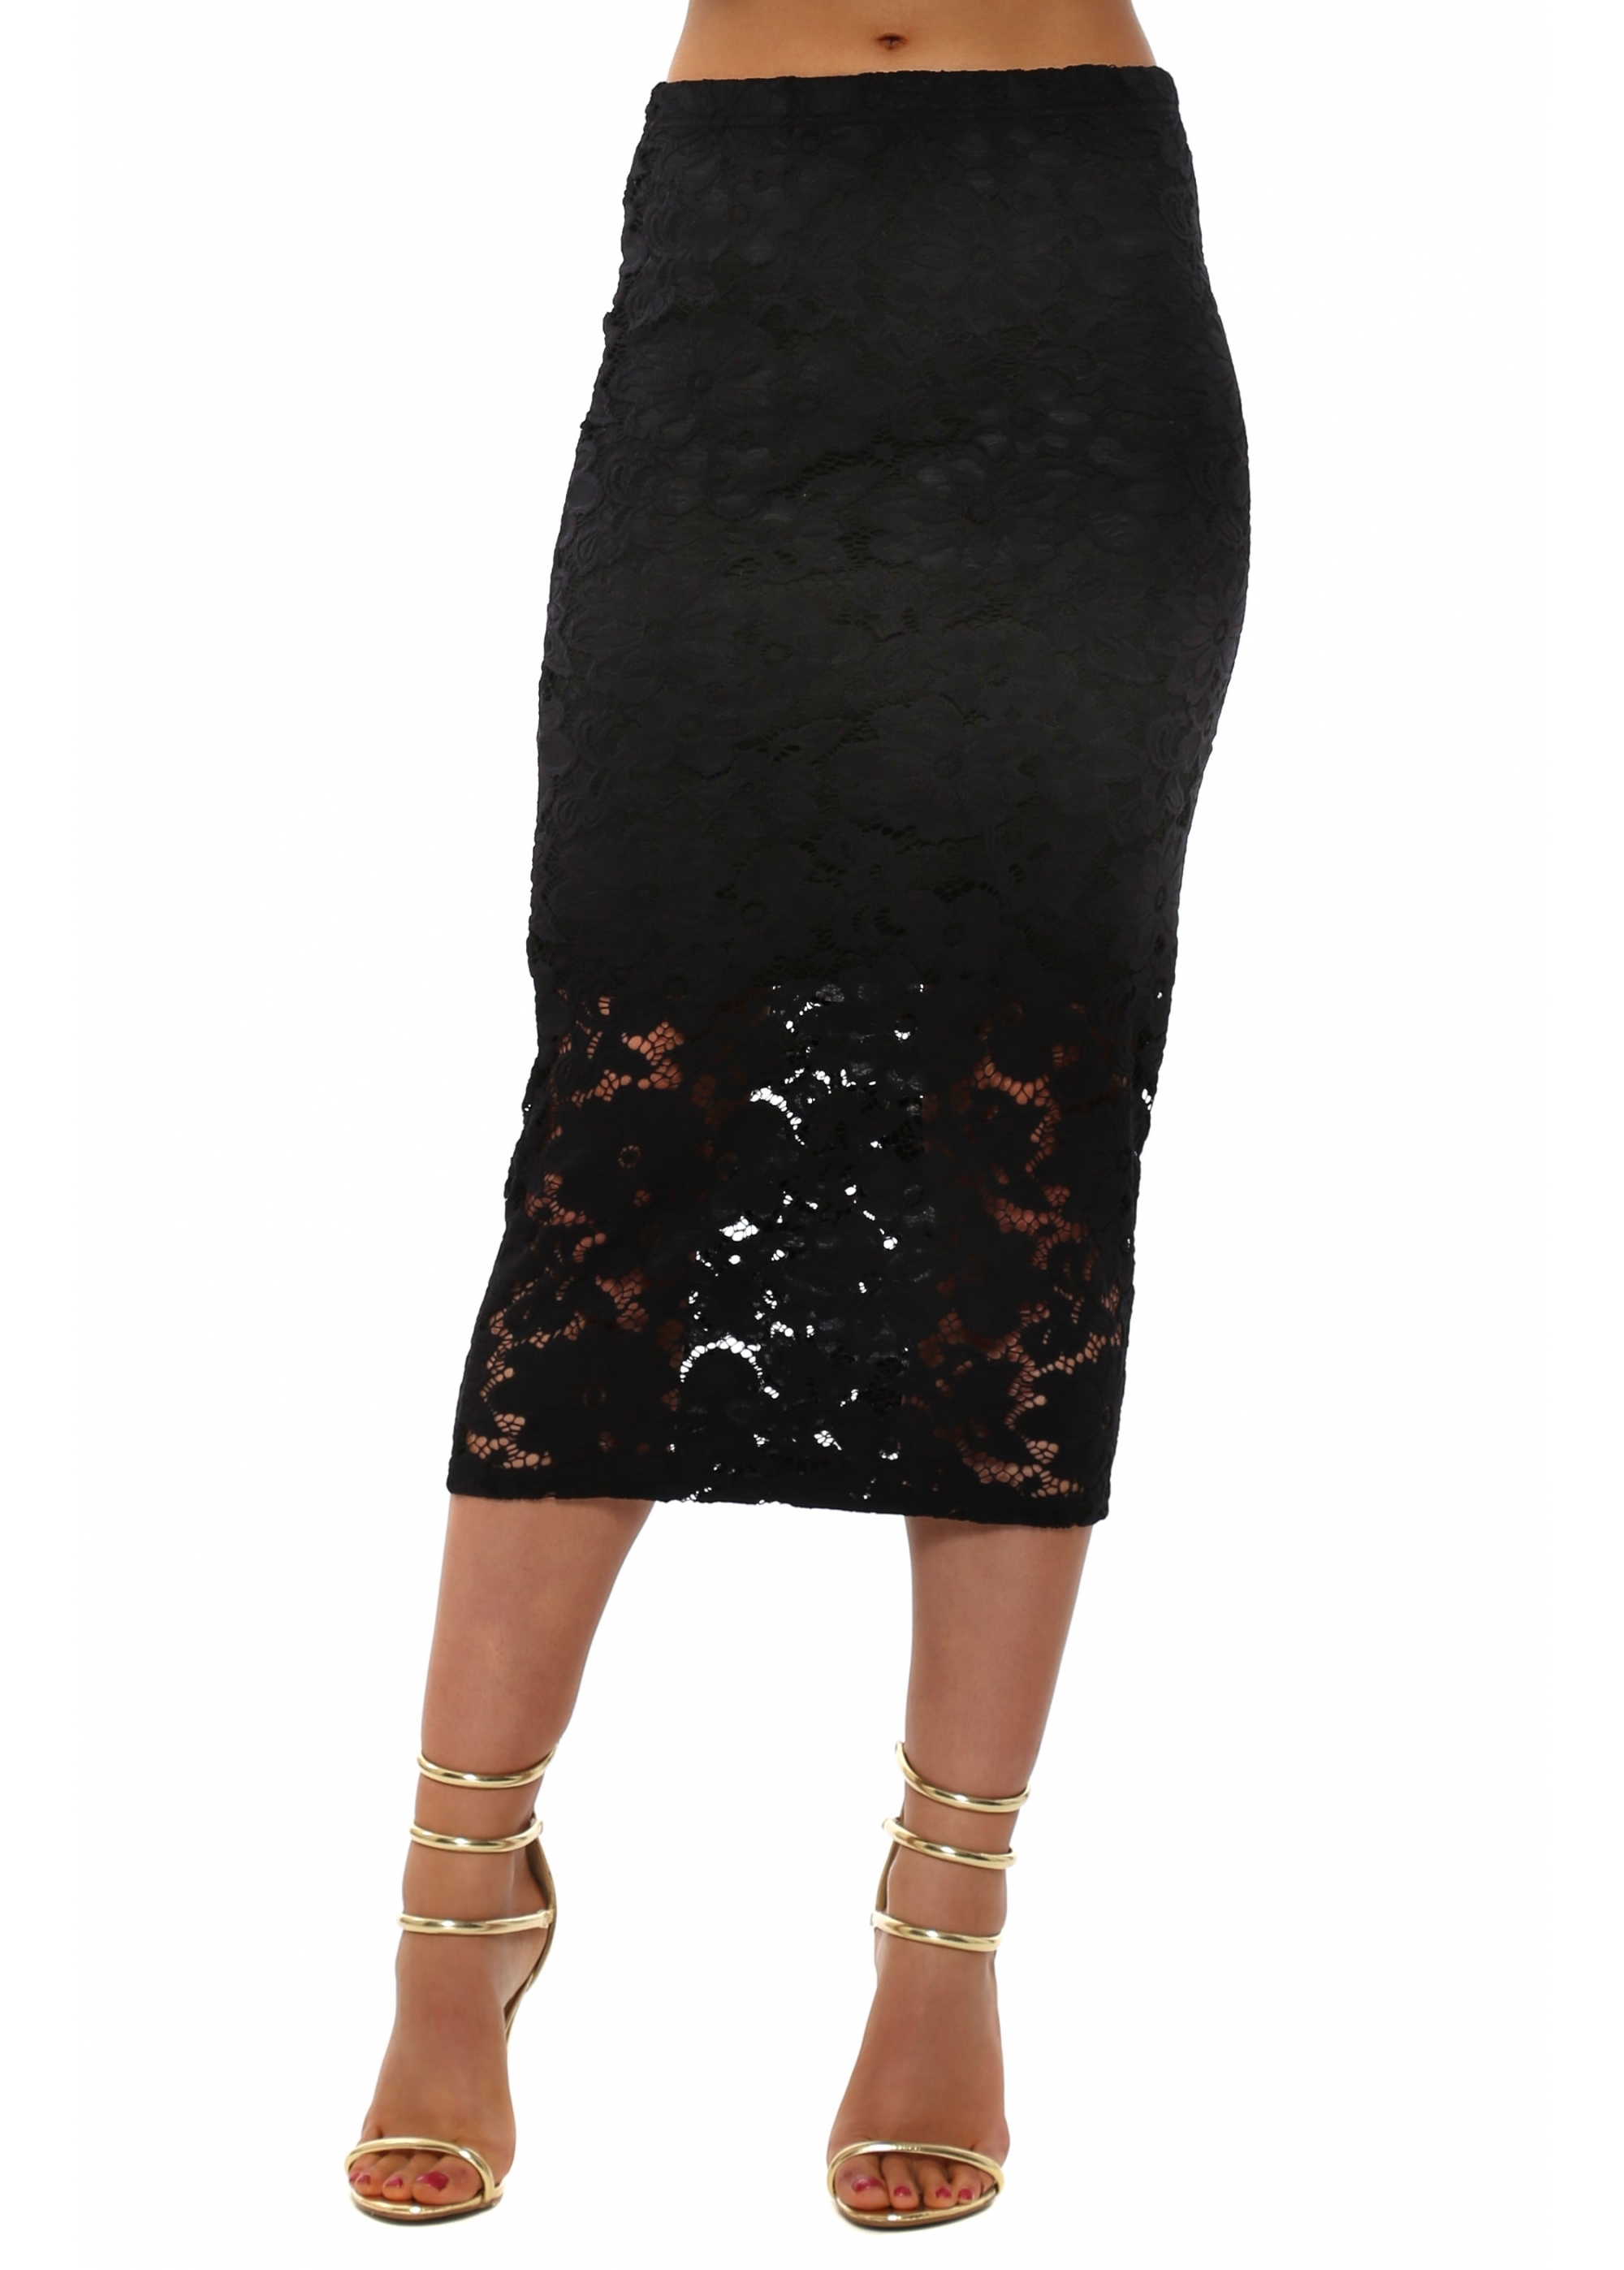 a postcard from brighton skirt black lace pencil skirt